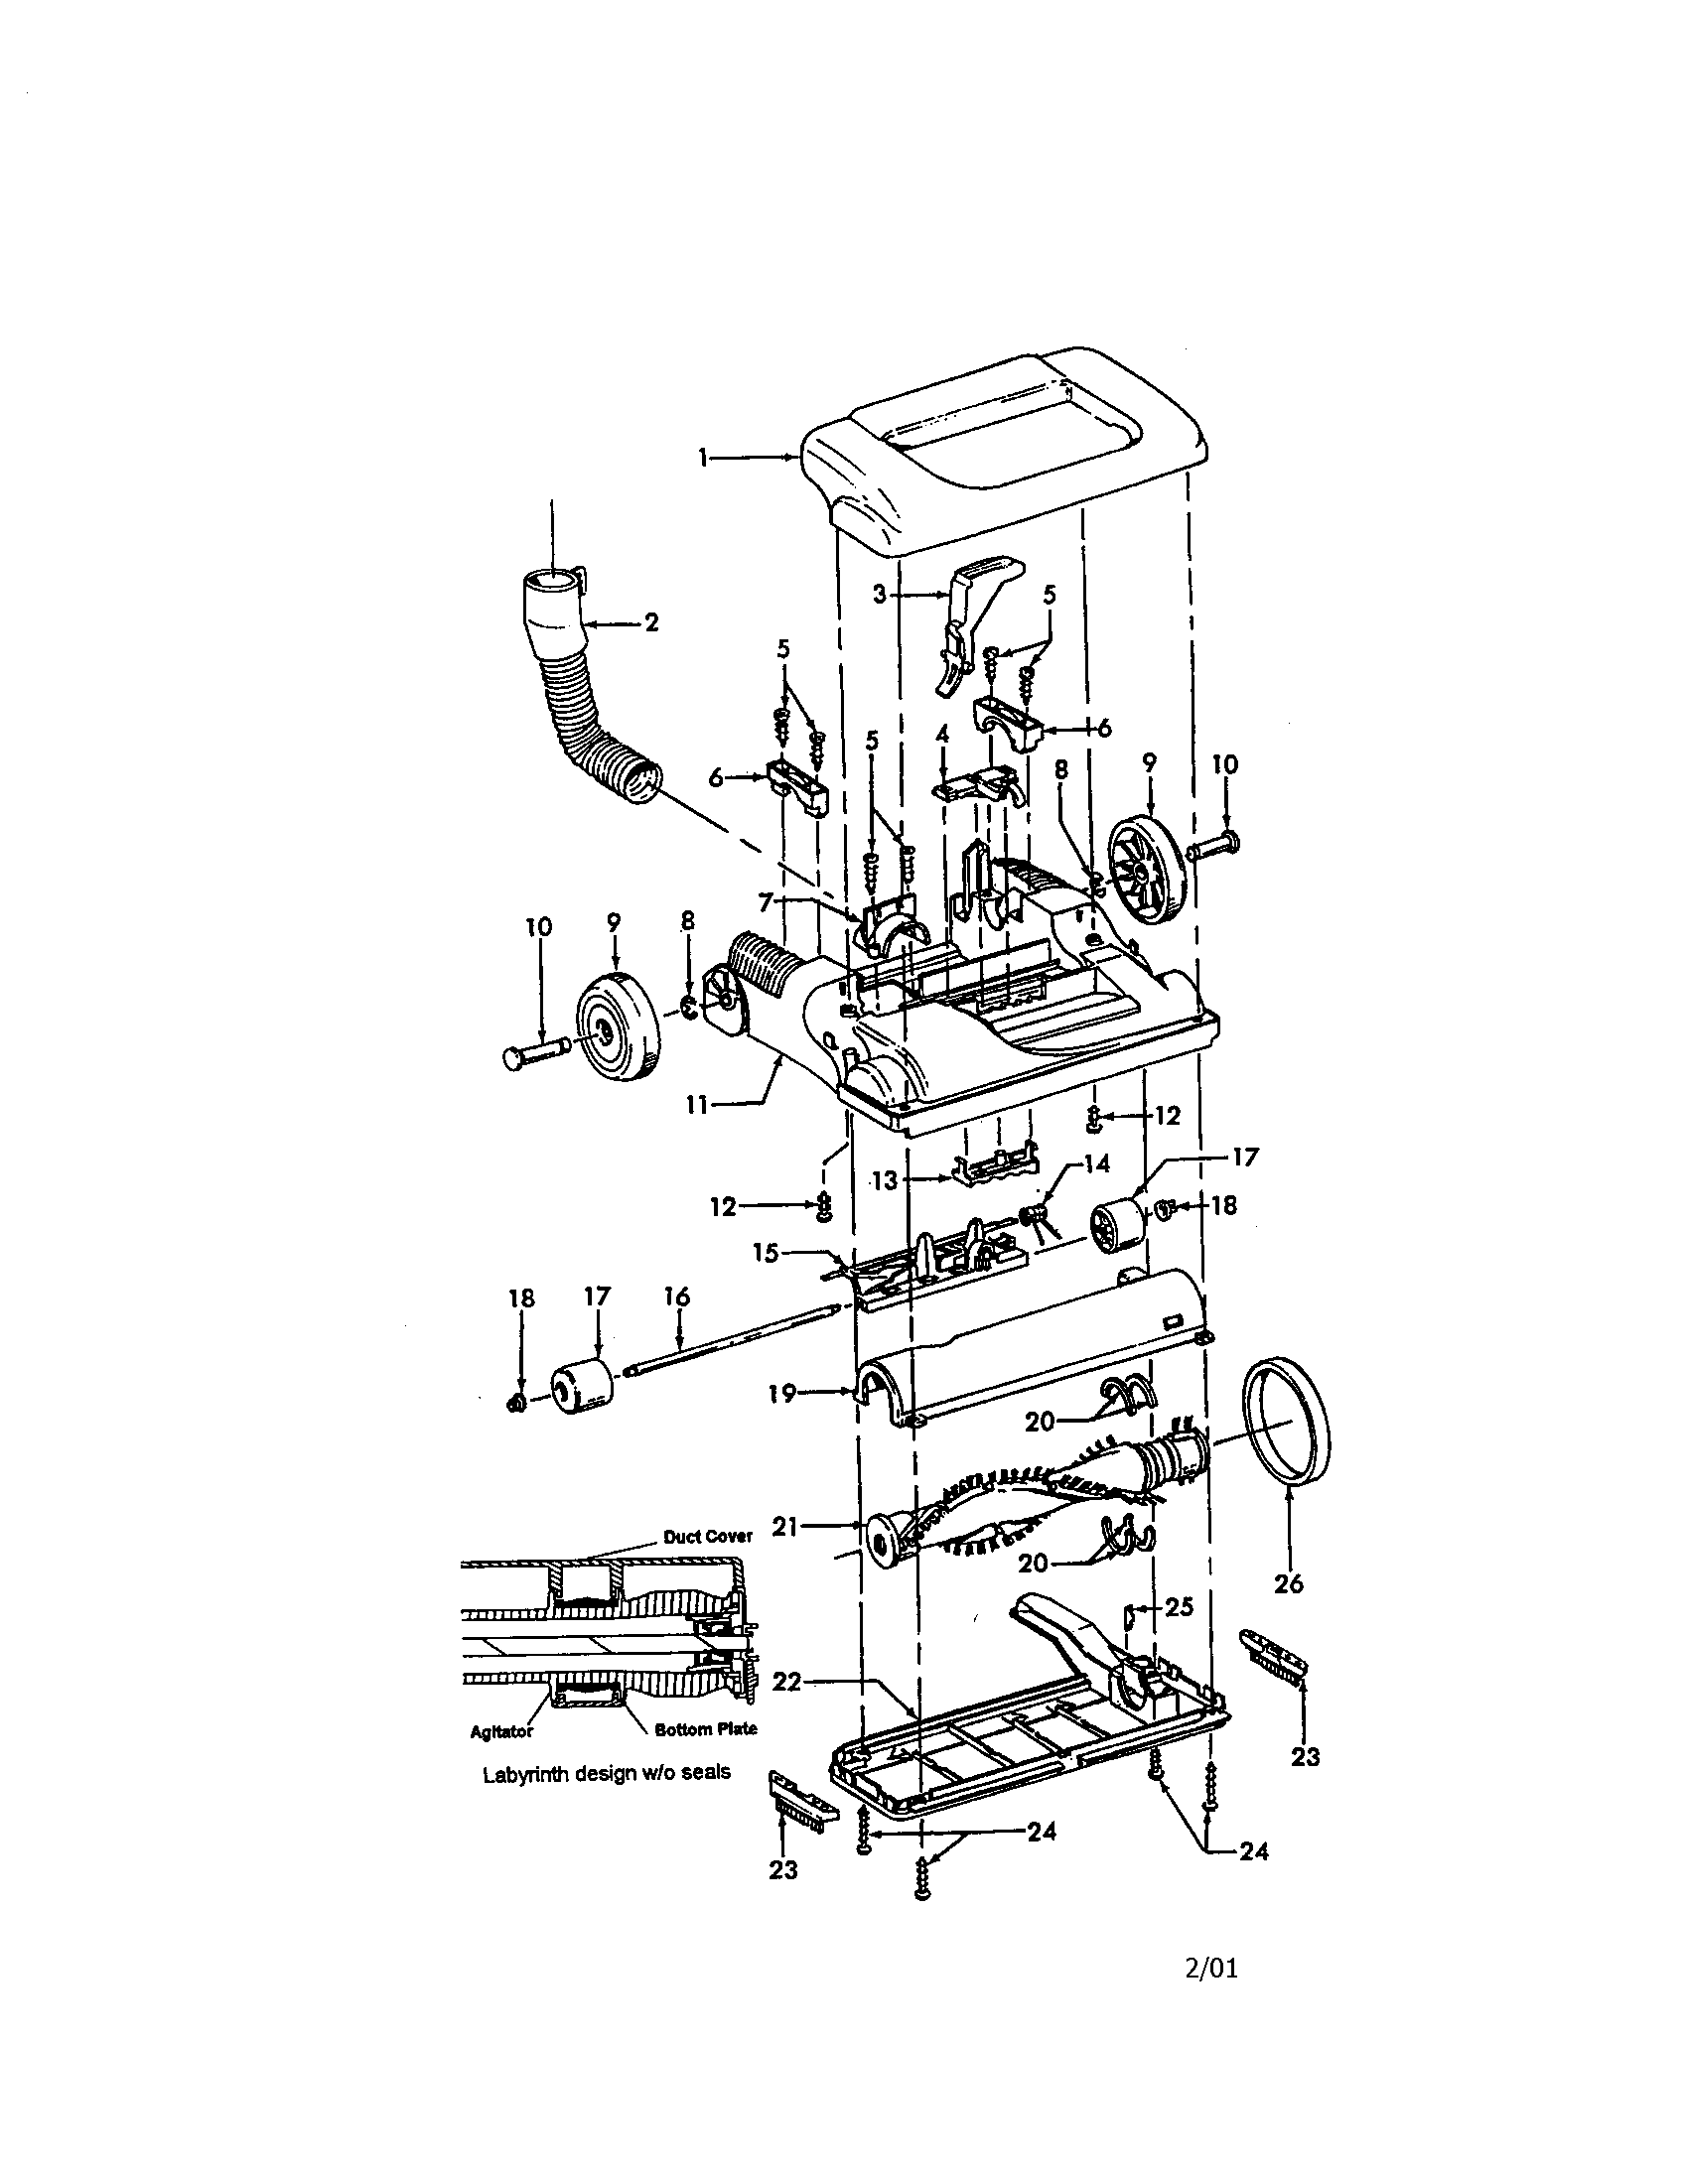 hoover windtunnel t series parts diagram tool to create er upright model u5443900 sears